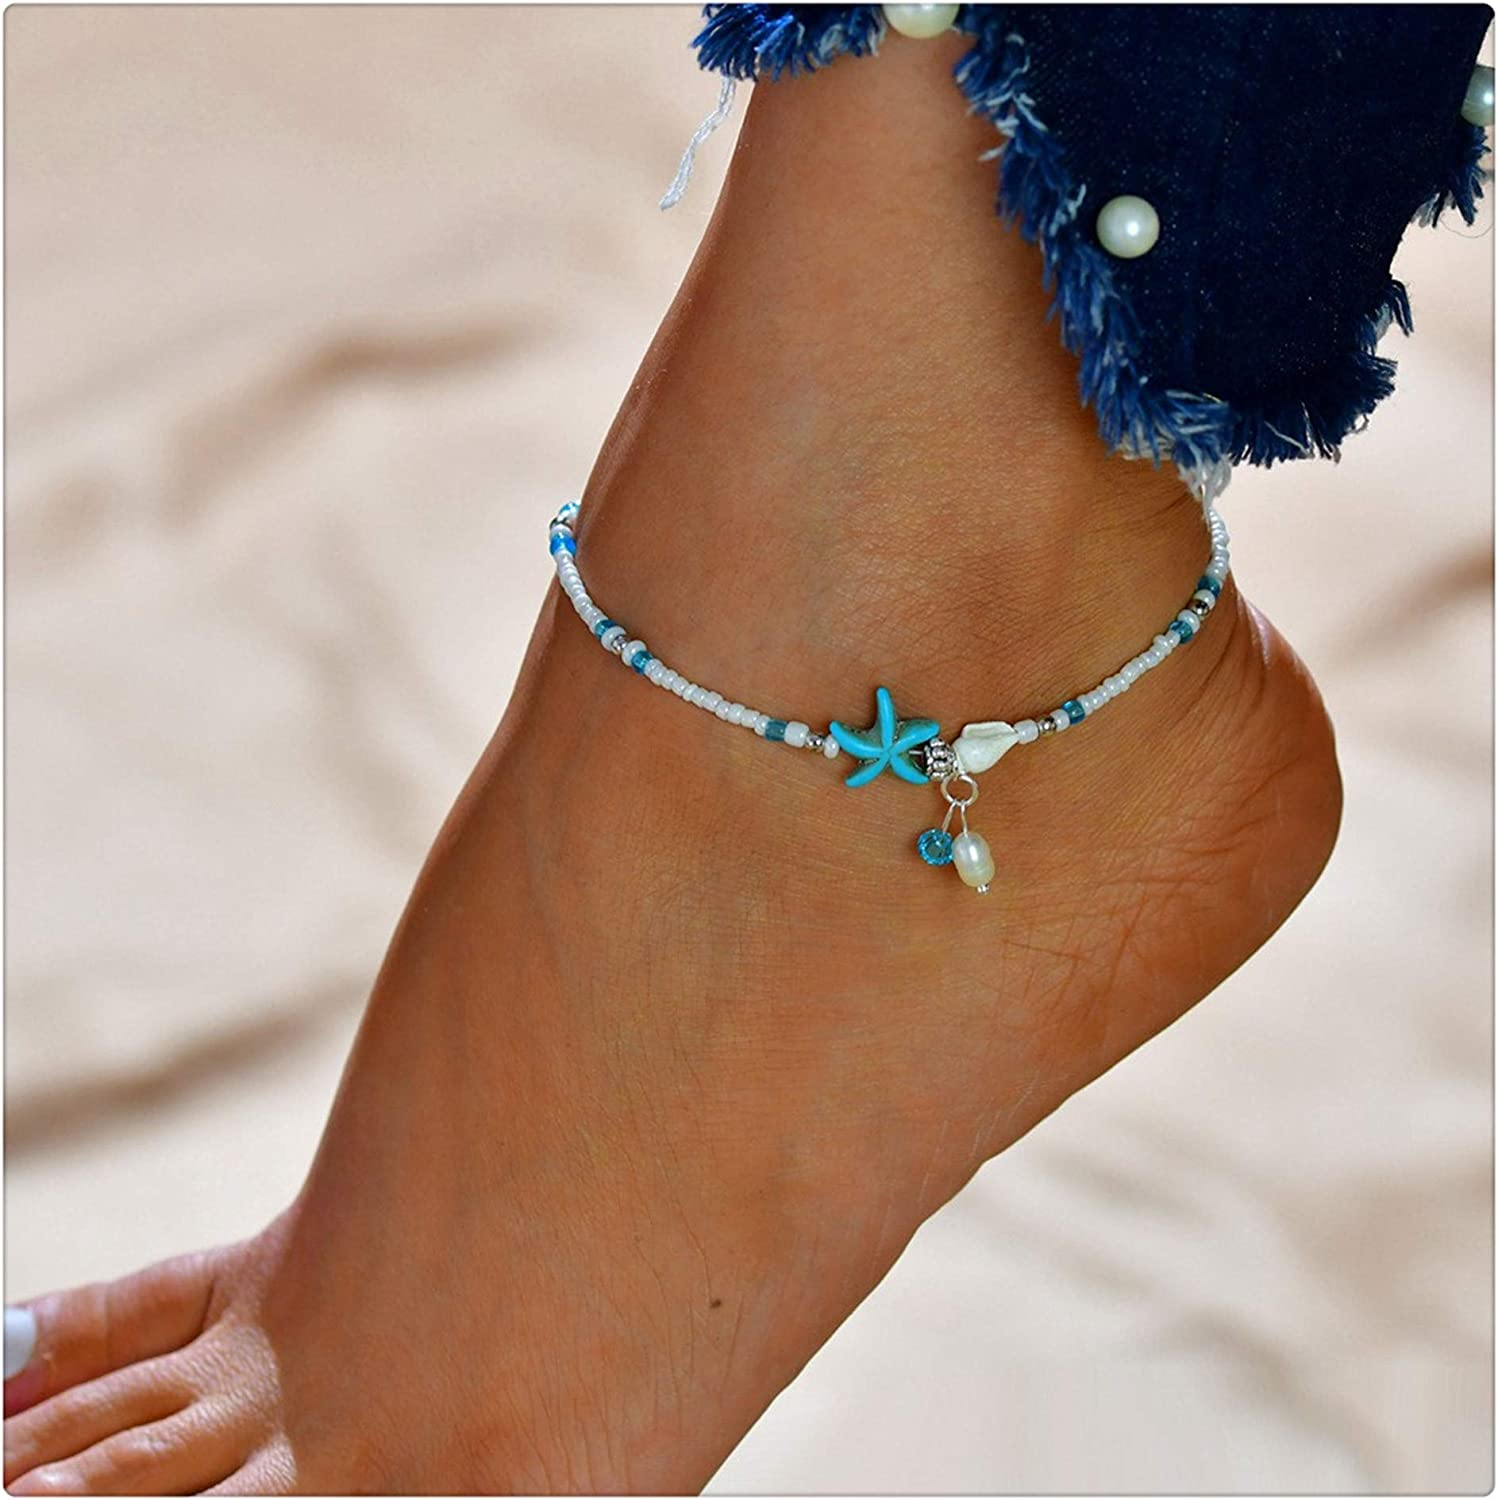 Anchor Anklet Blue Ankle Bracelet Beach Jewelry Foot Bracelet Anklets For Women Summer Jewelry Blue Anklet Foot Jewelry